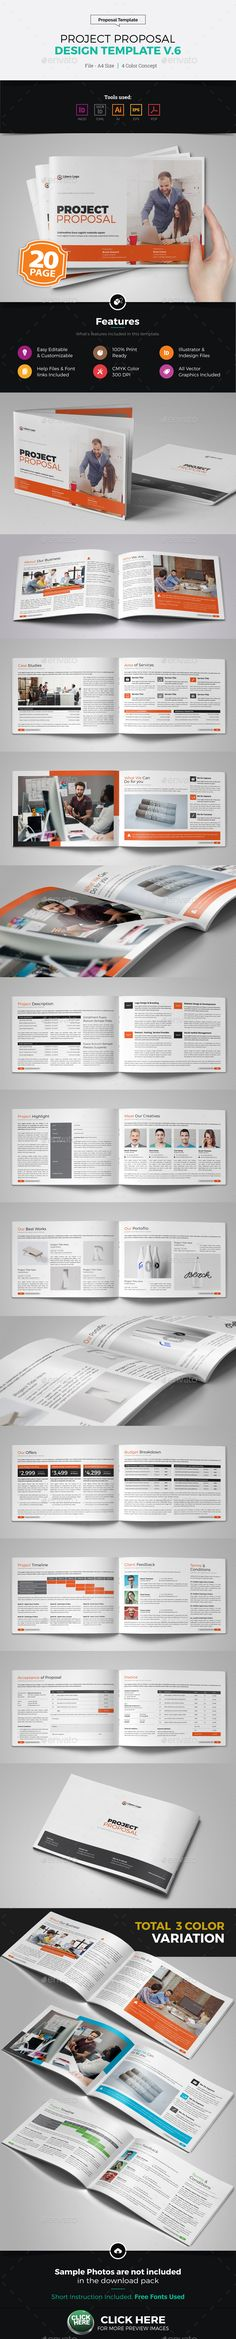 Project Proposal Brochure Template Vector EPS, InDesign INDD, AI Illustrator